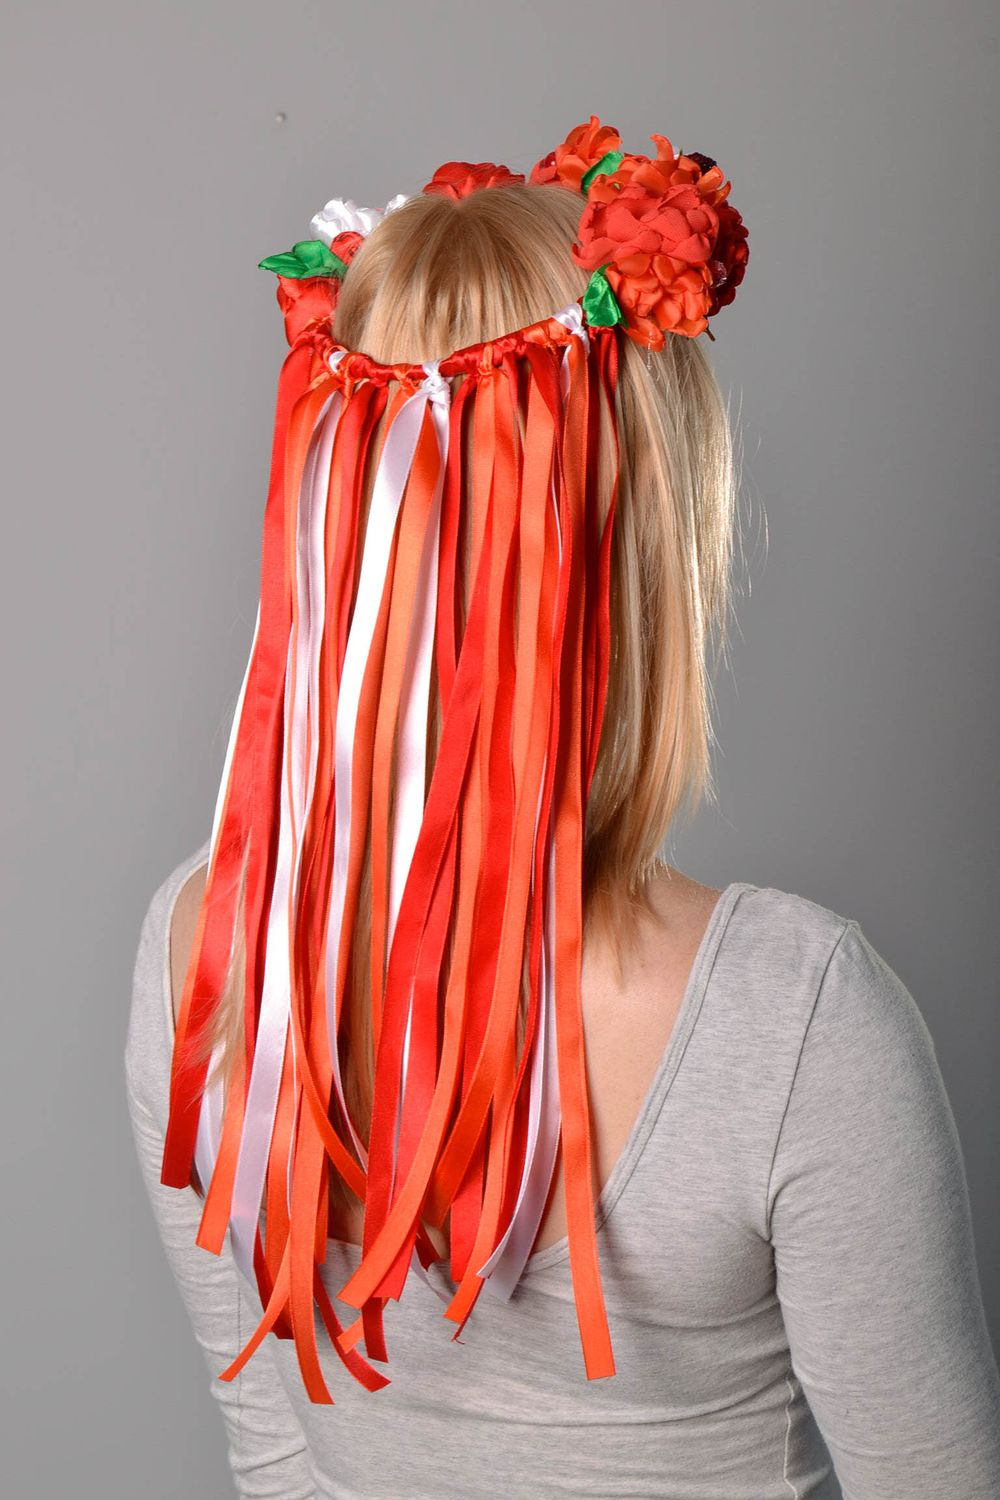 headbands and wreaths Head wreath made of flowers and berries - MADEheart.com